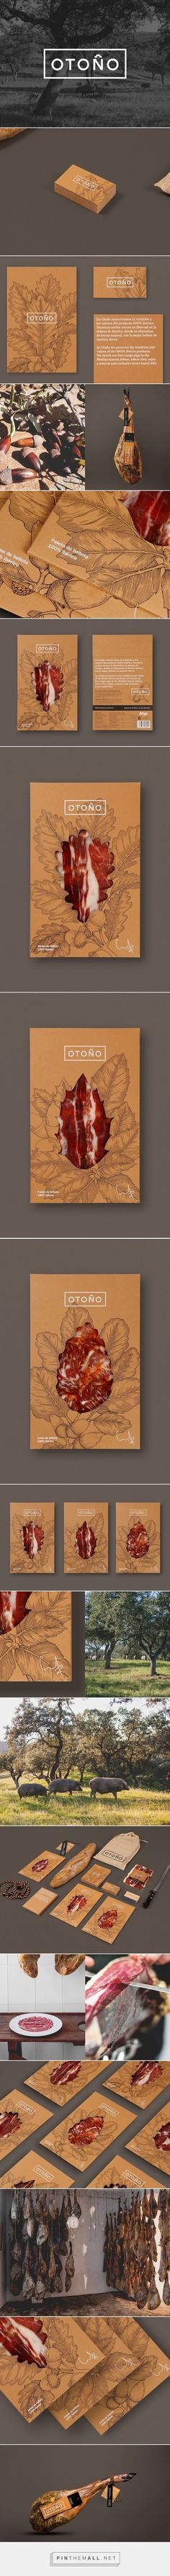 Otoño Free Range Meat Branding and Packaging by Tres Tipos Graficos   Fivestar Branding Agency – Design and Branding Agency & Curated Inspiration Gallery